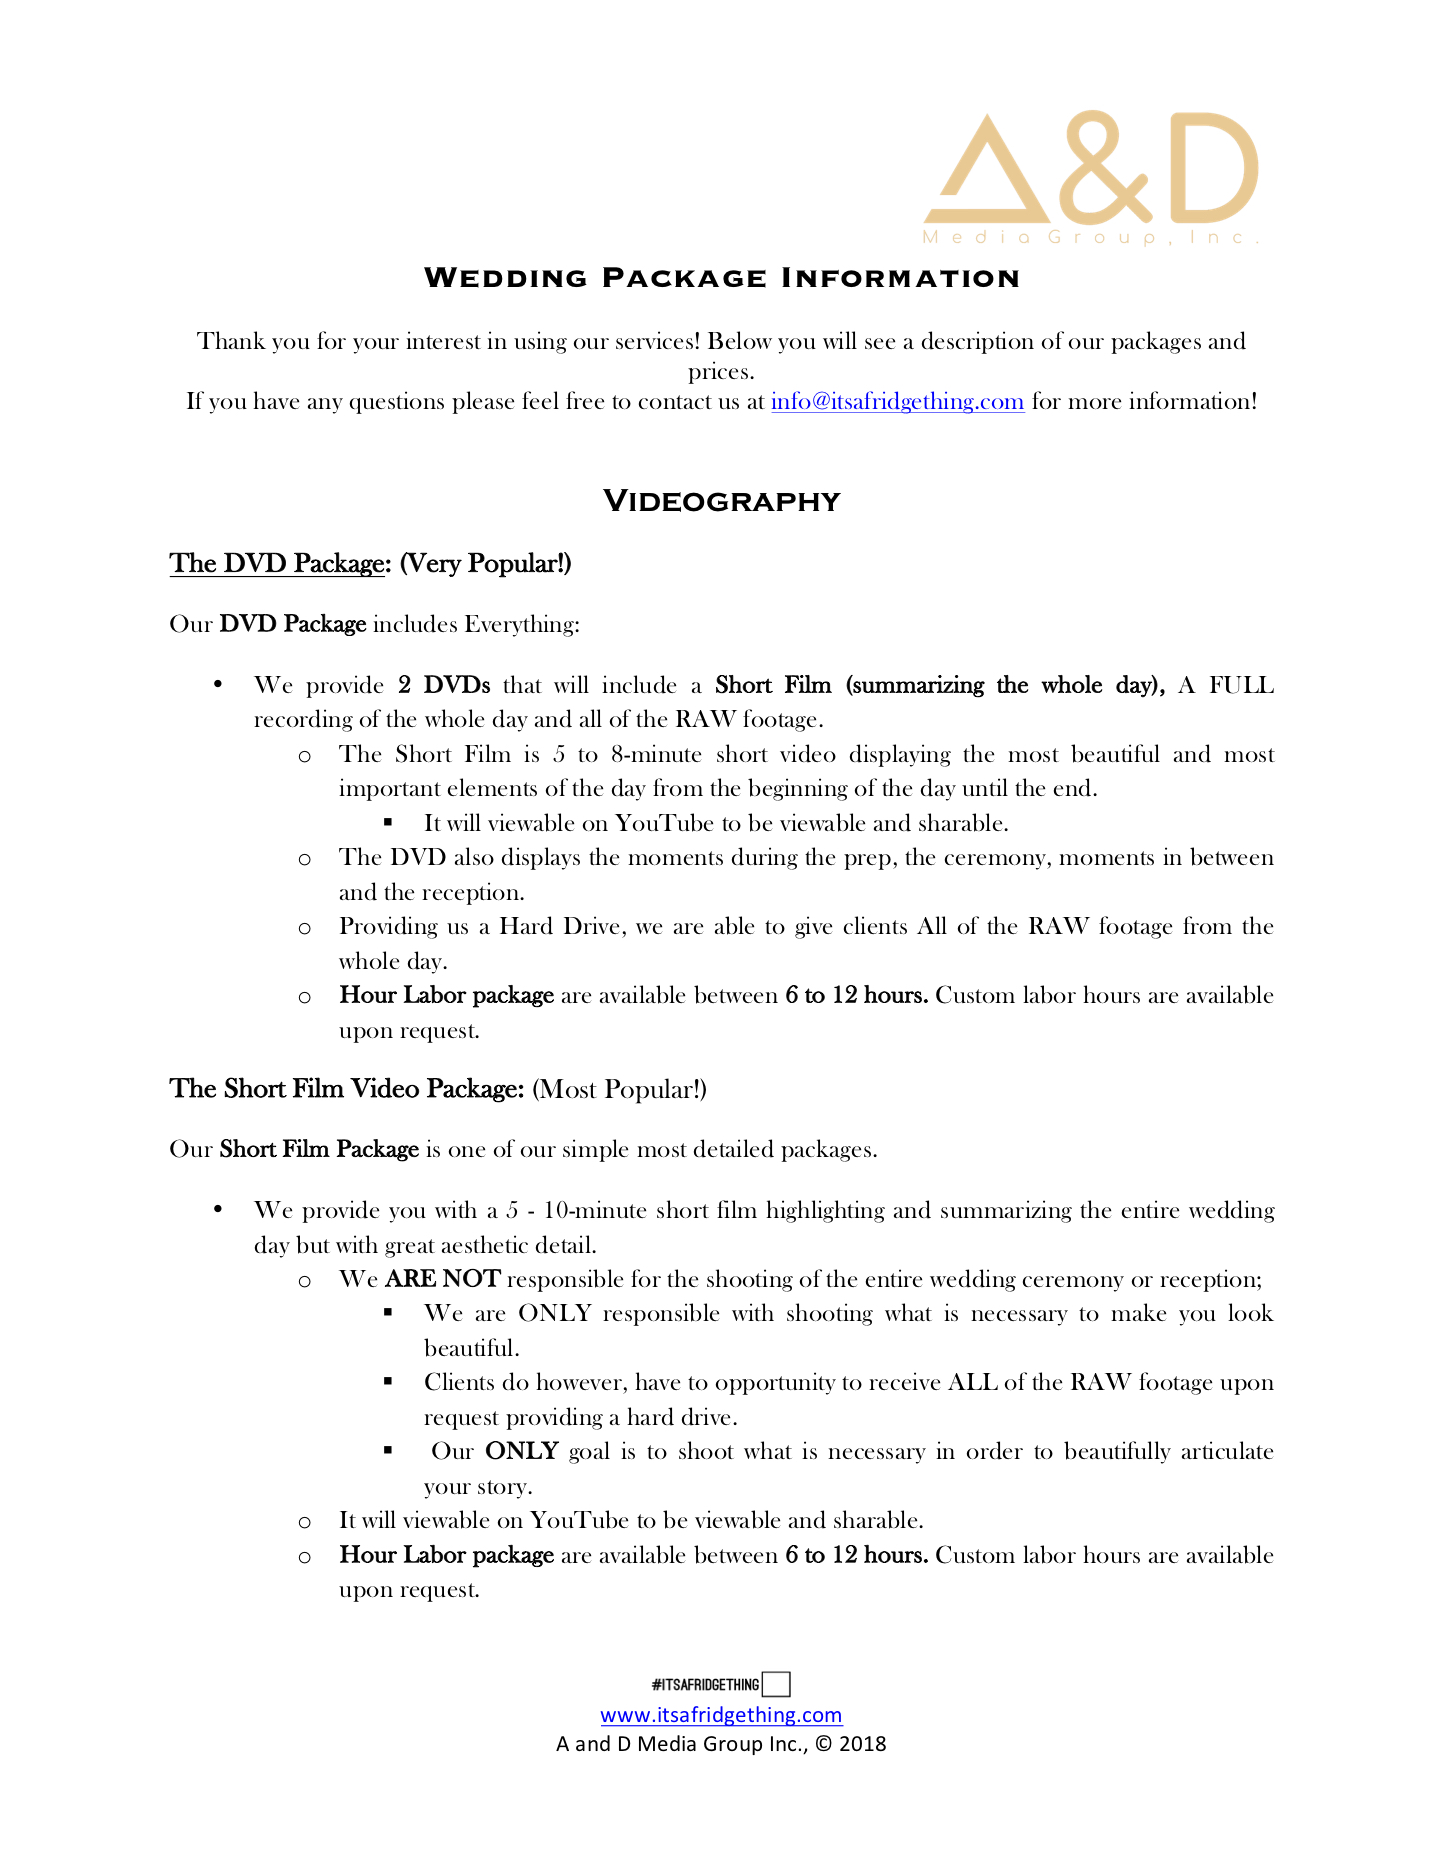 Its a Fridge Thing Wedding Package Information.jpg